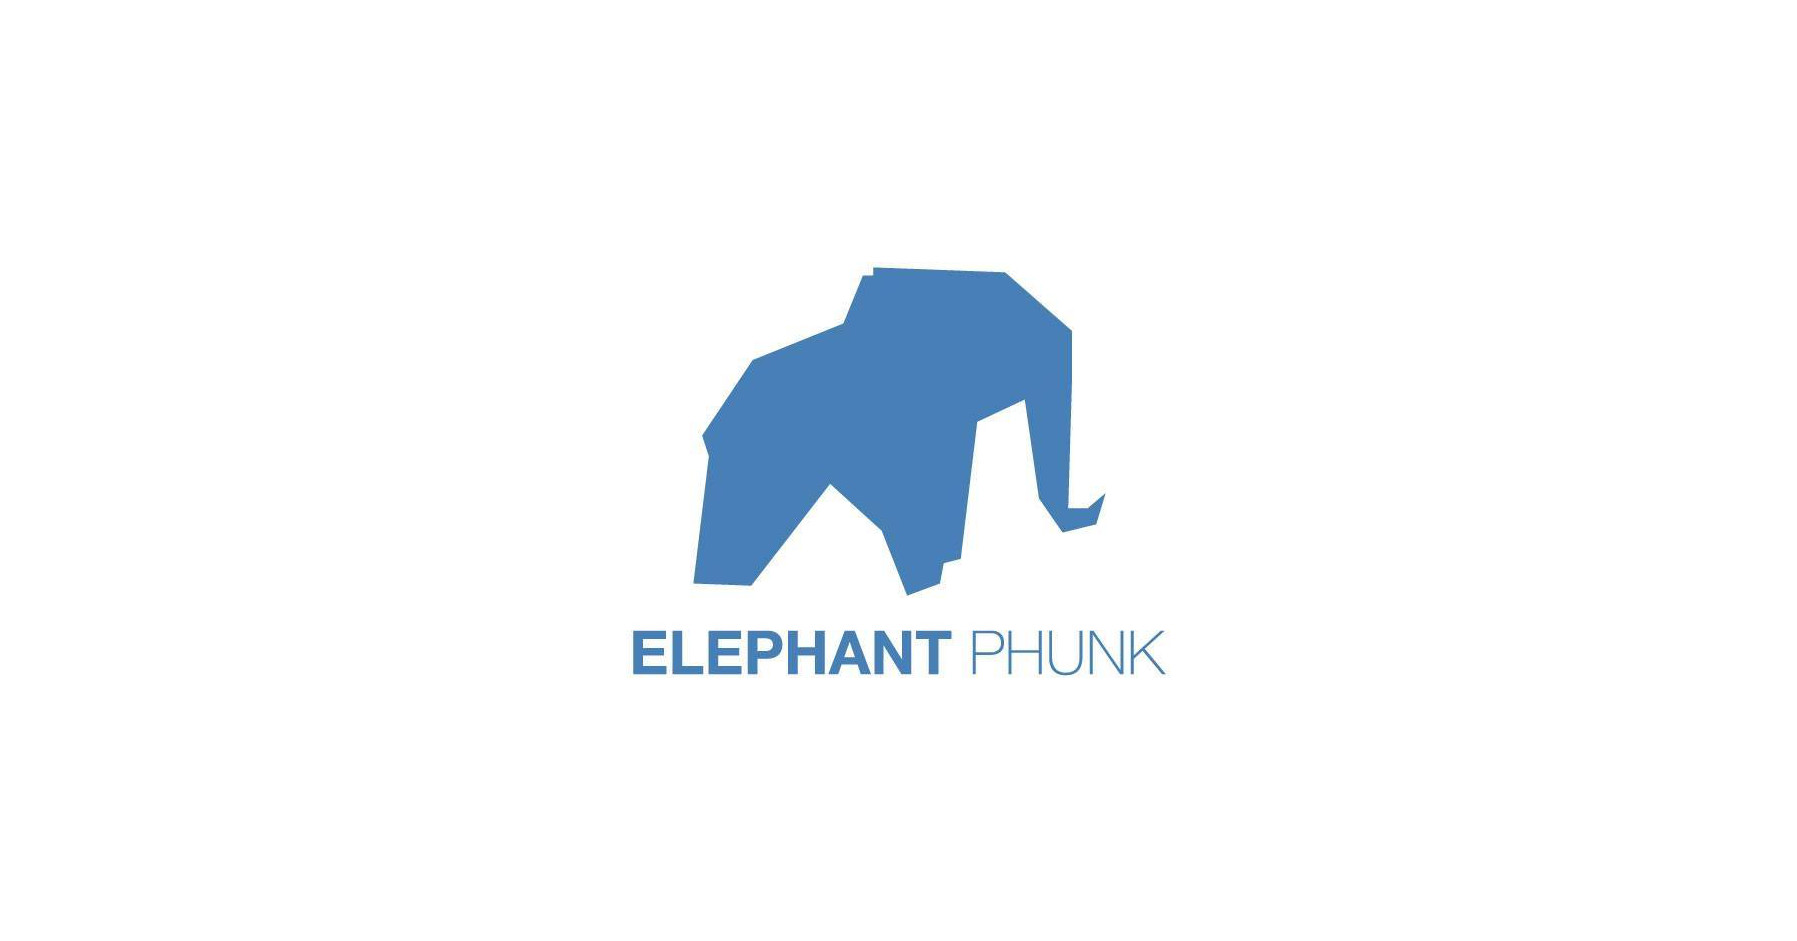 Job: Media Buyer Social Media Specialist at Elephant Phunk in Cairo, Egypt